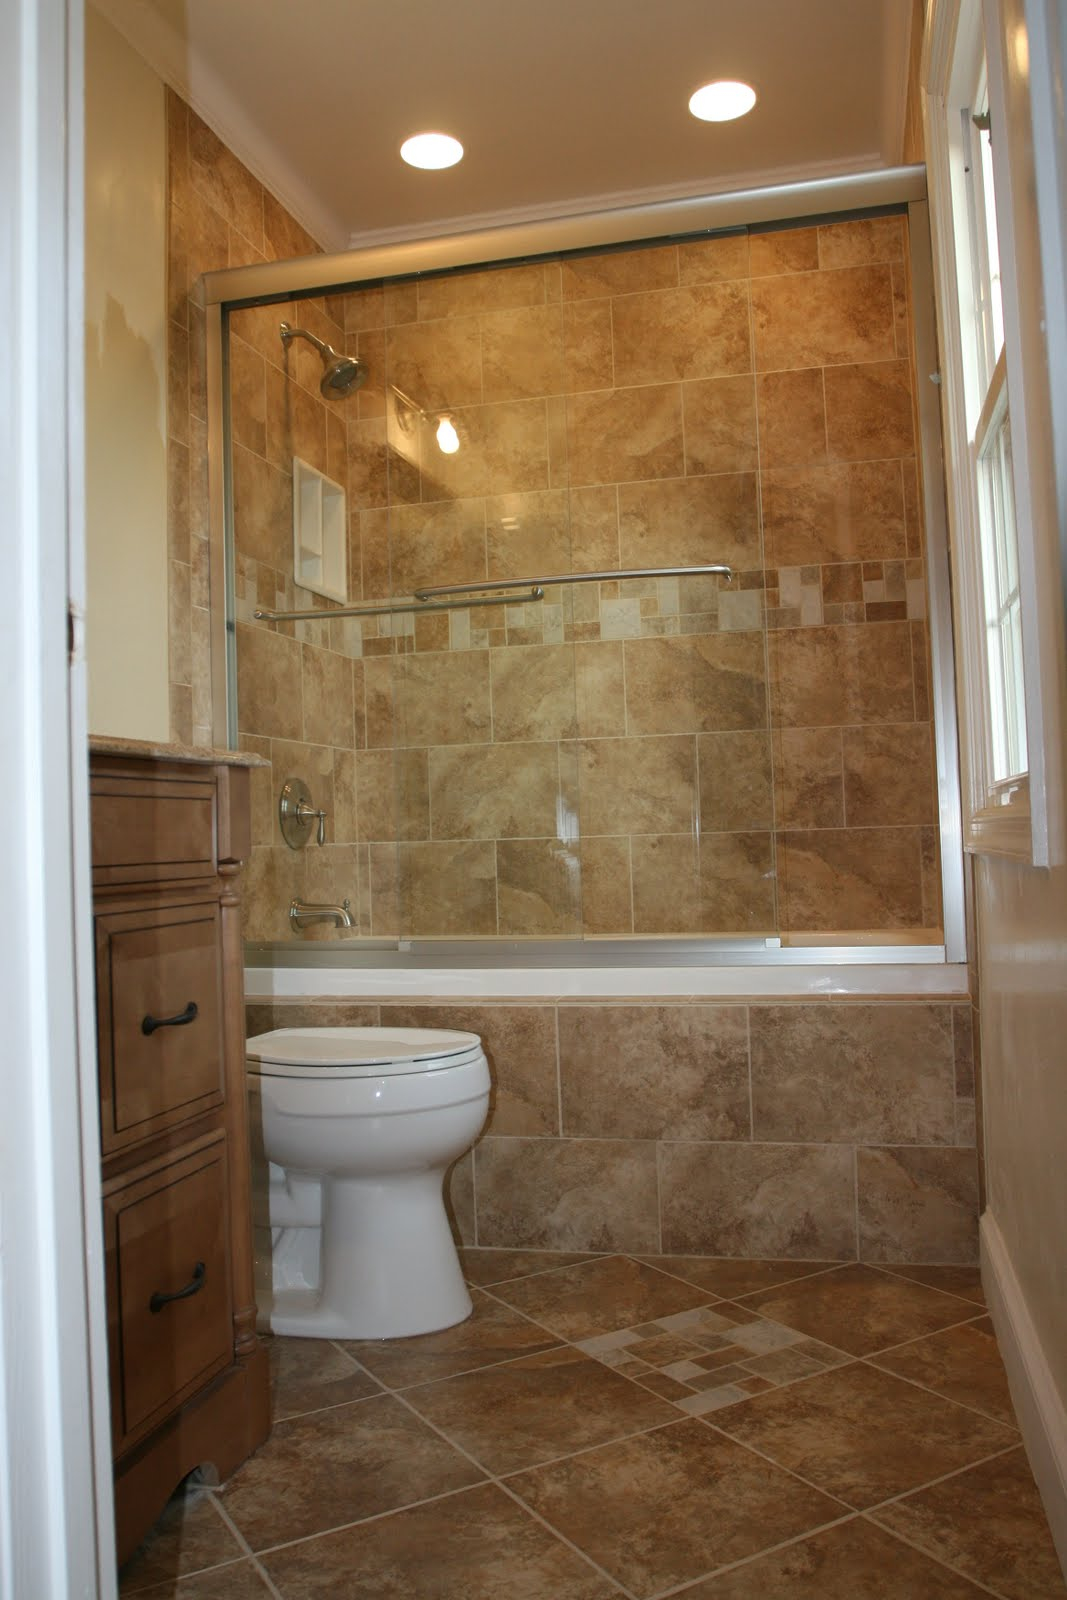 Bathroom remodeling design ideas tile shower niches for Tiles bathroom design